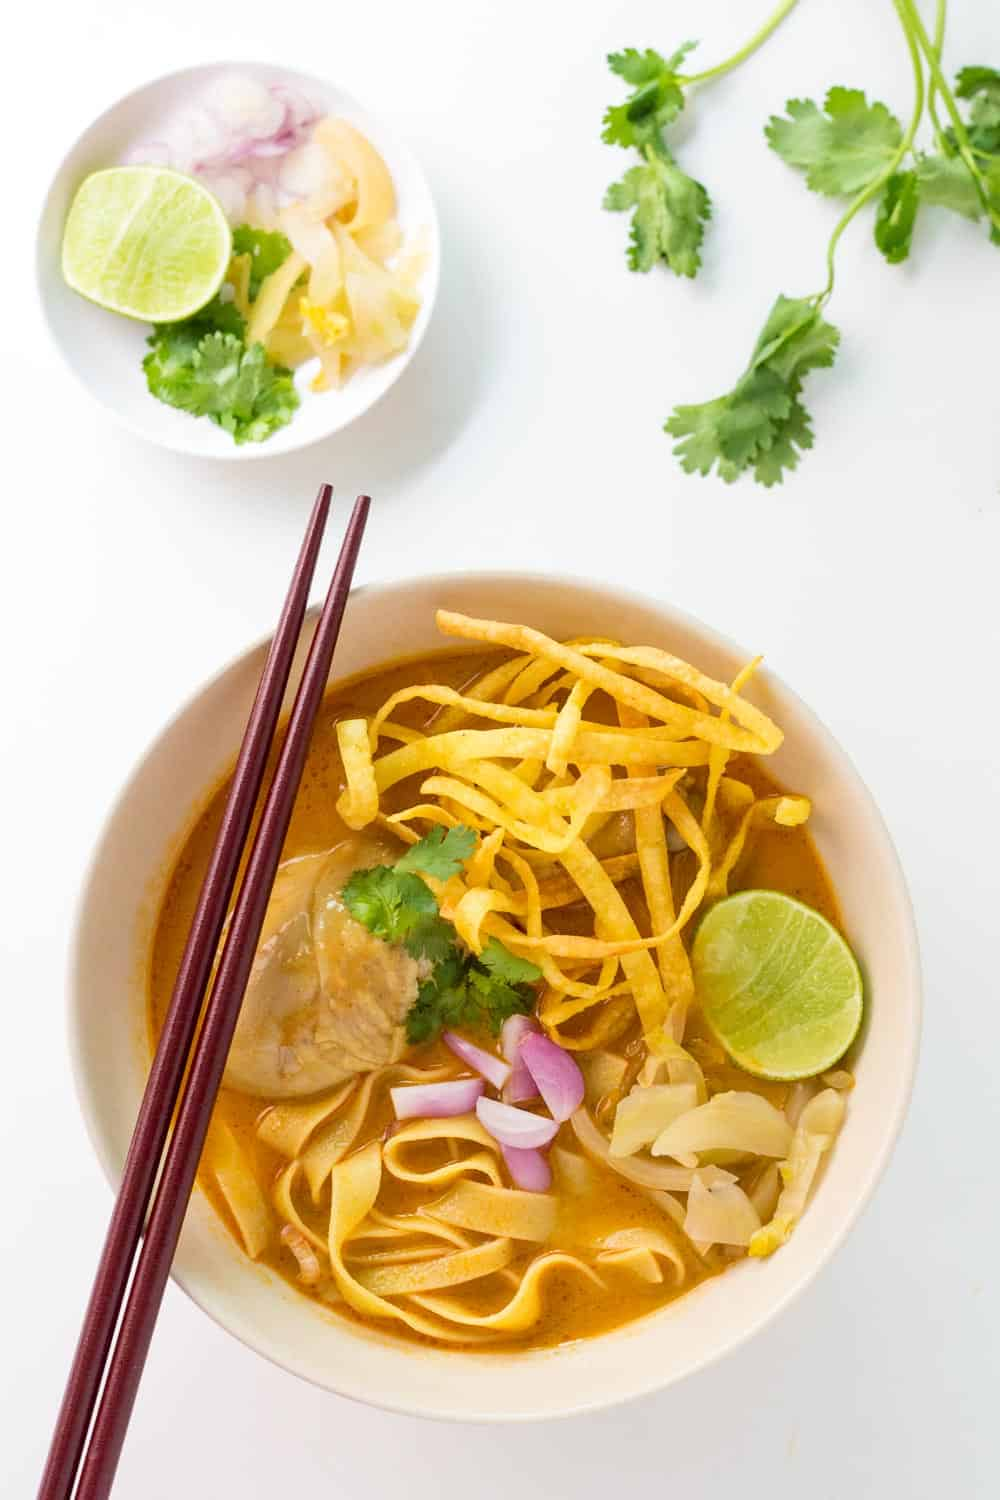 Bowl of Khao Soi